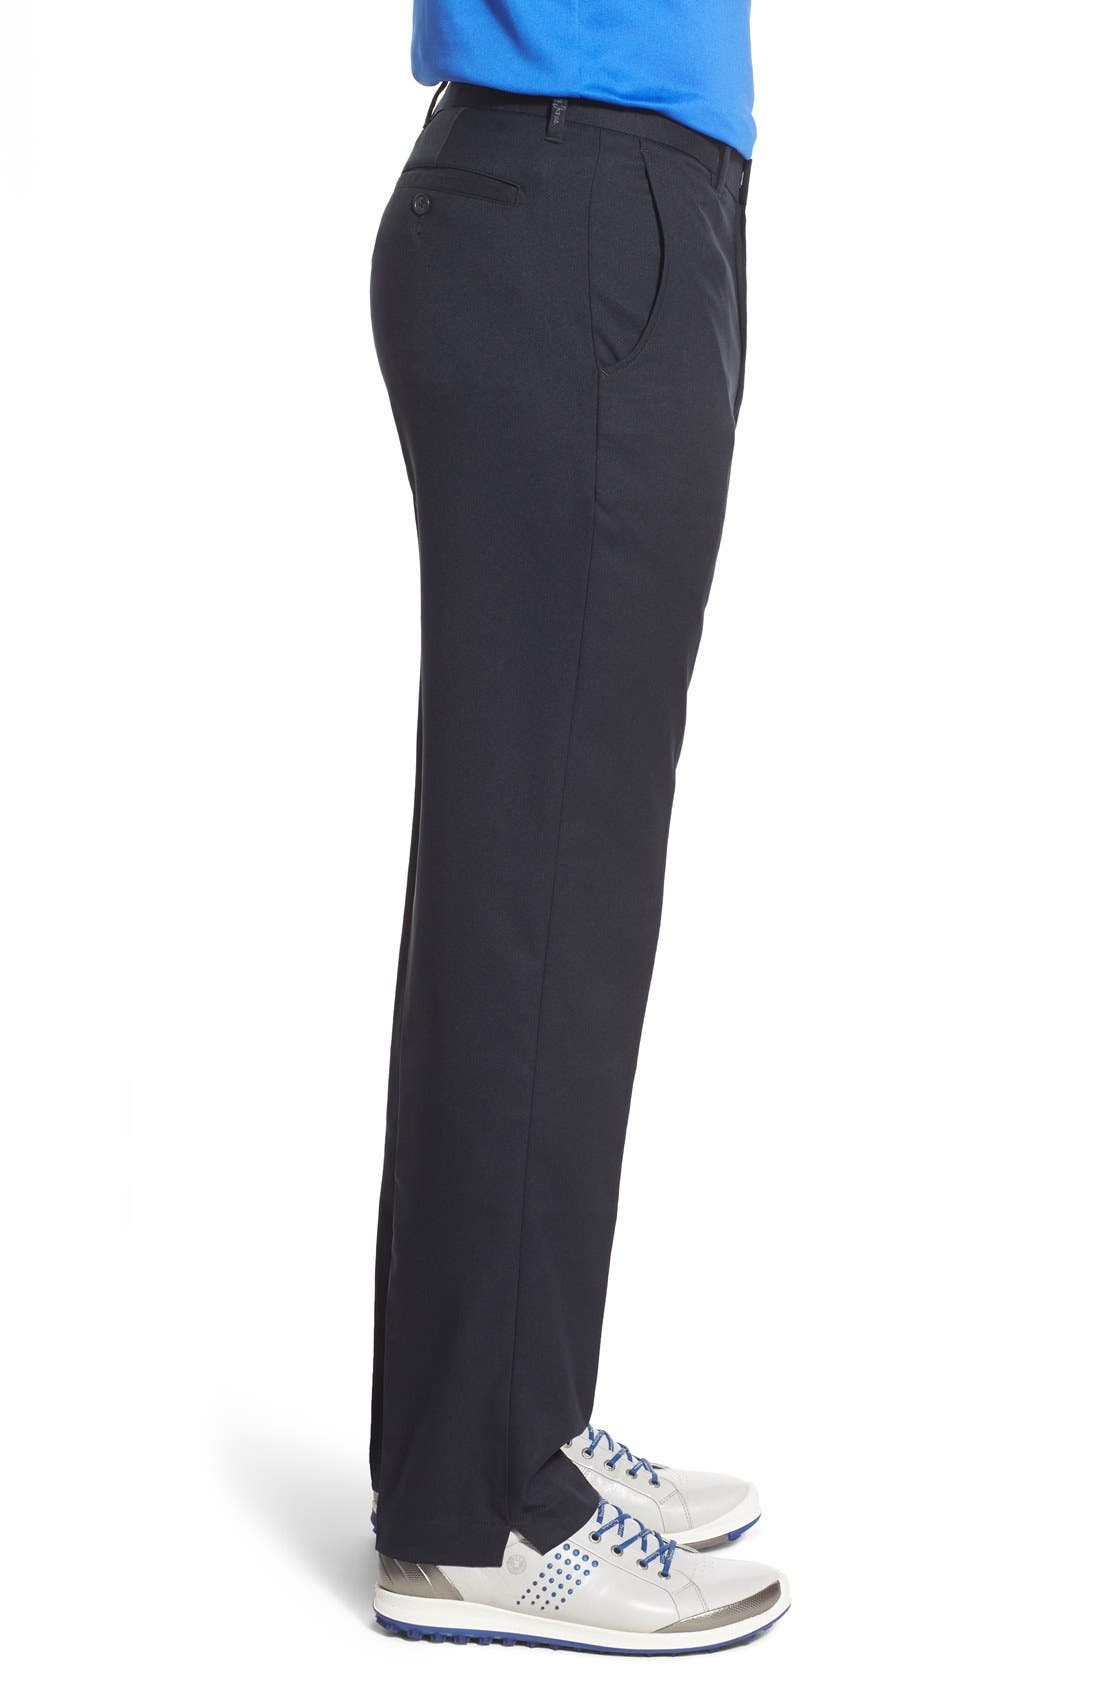 'Tech' Flat Front Wrinkle Free Golf Pants,                             Alternate thumbnail 4, color,                             Black